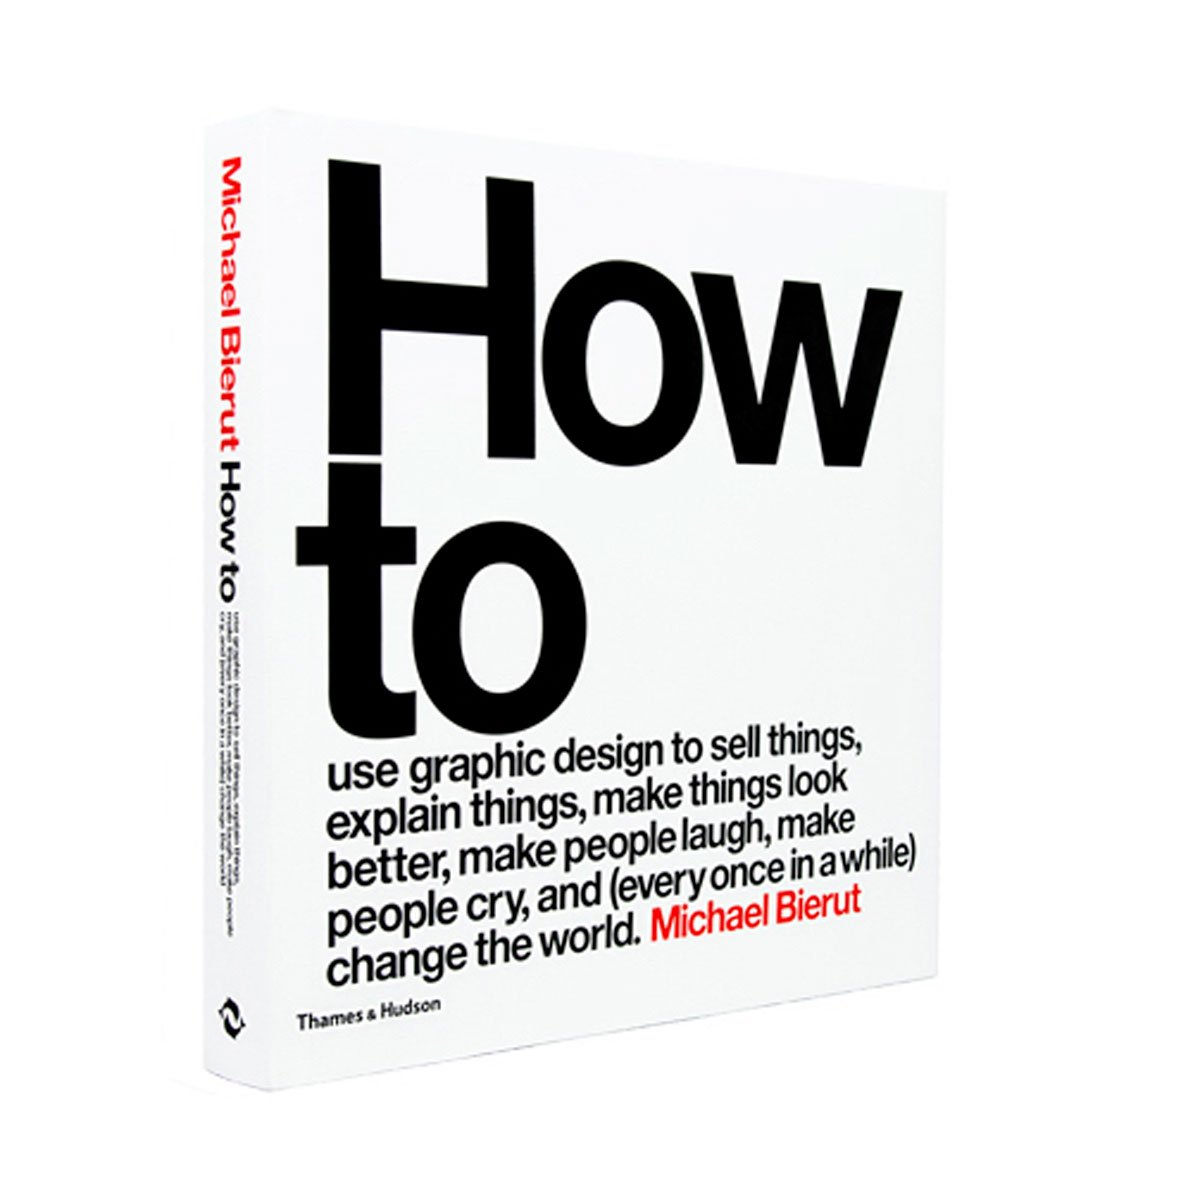 UCreative's Graphic Design Reading List